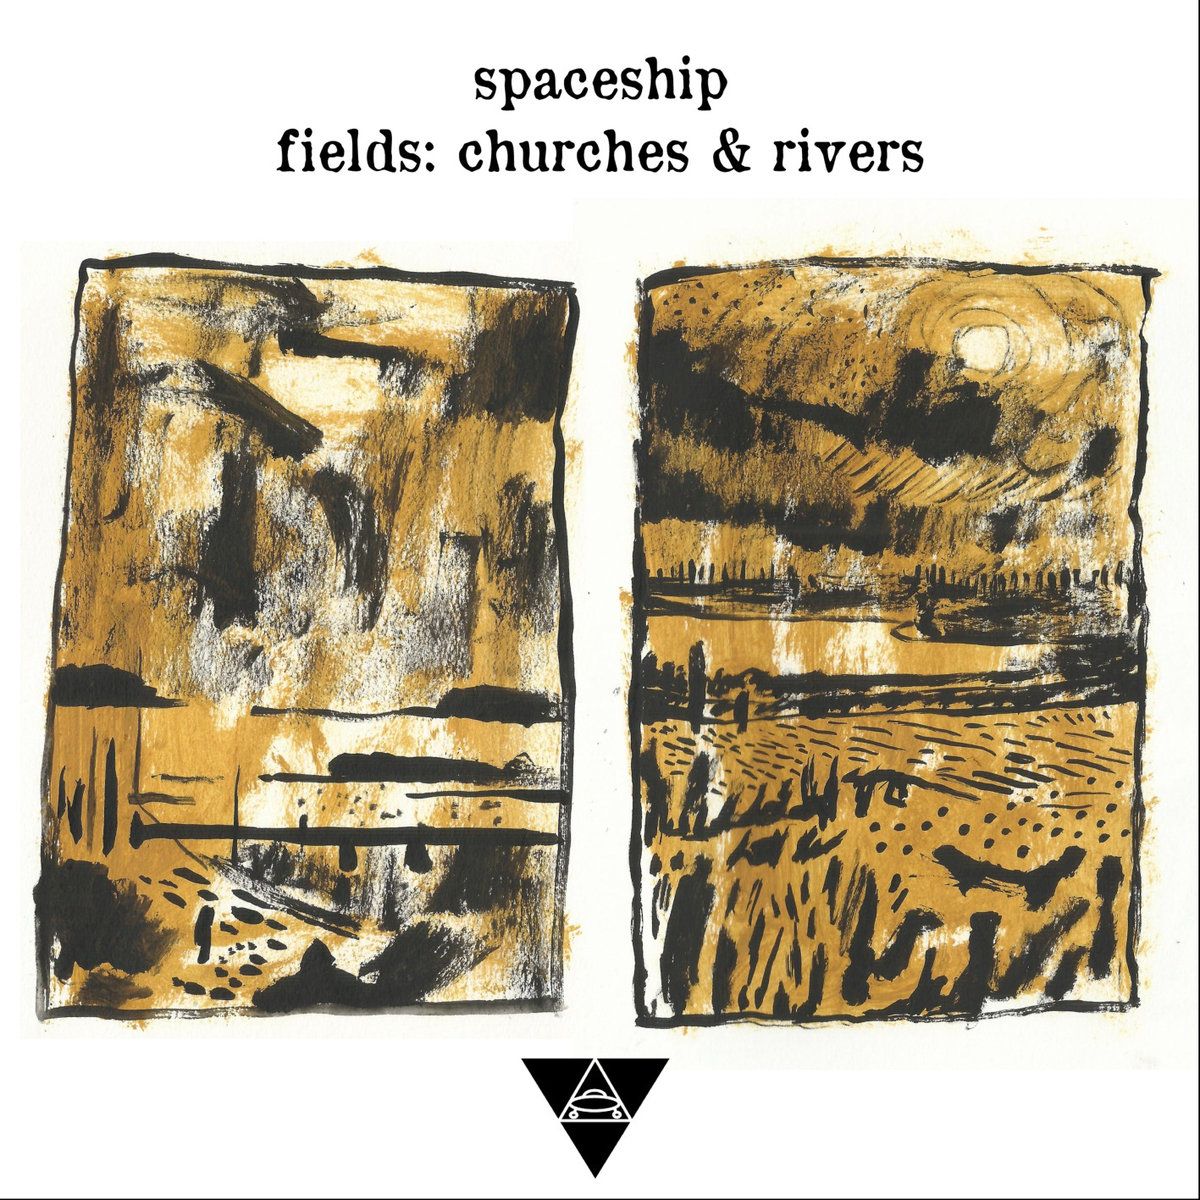 Fields: Churches & Rivers by Spaceship